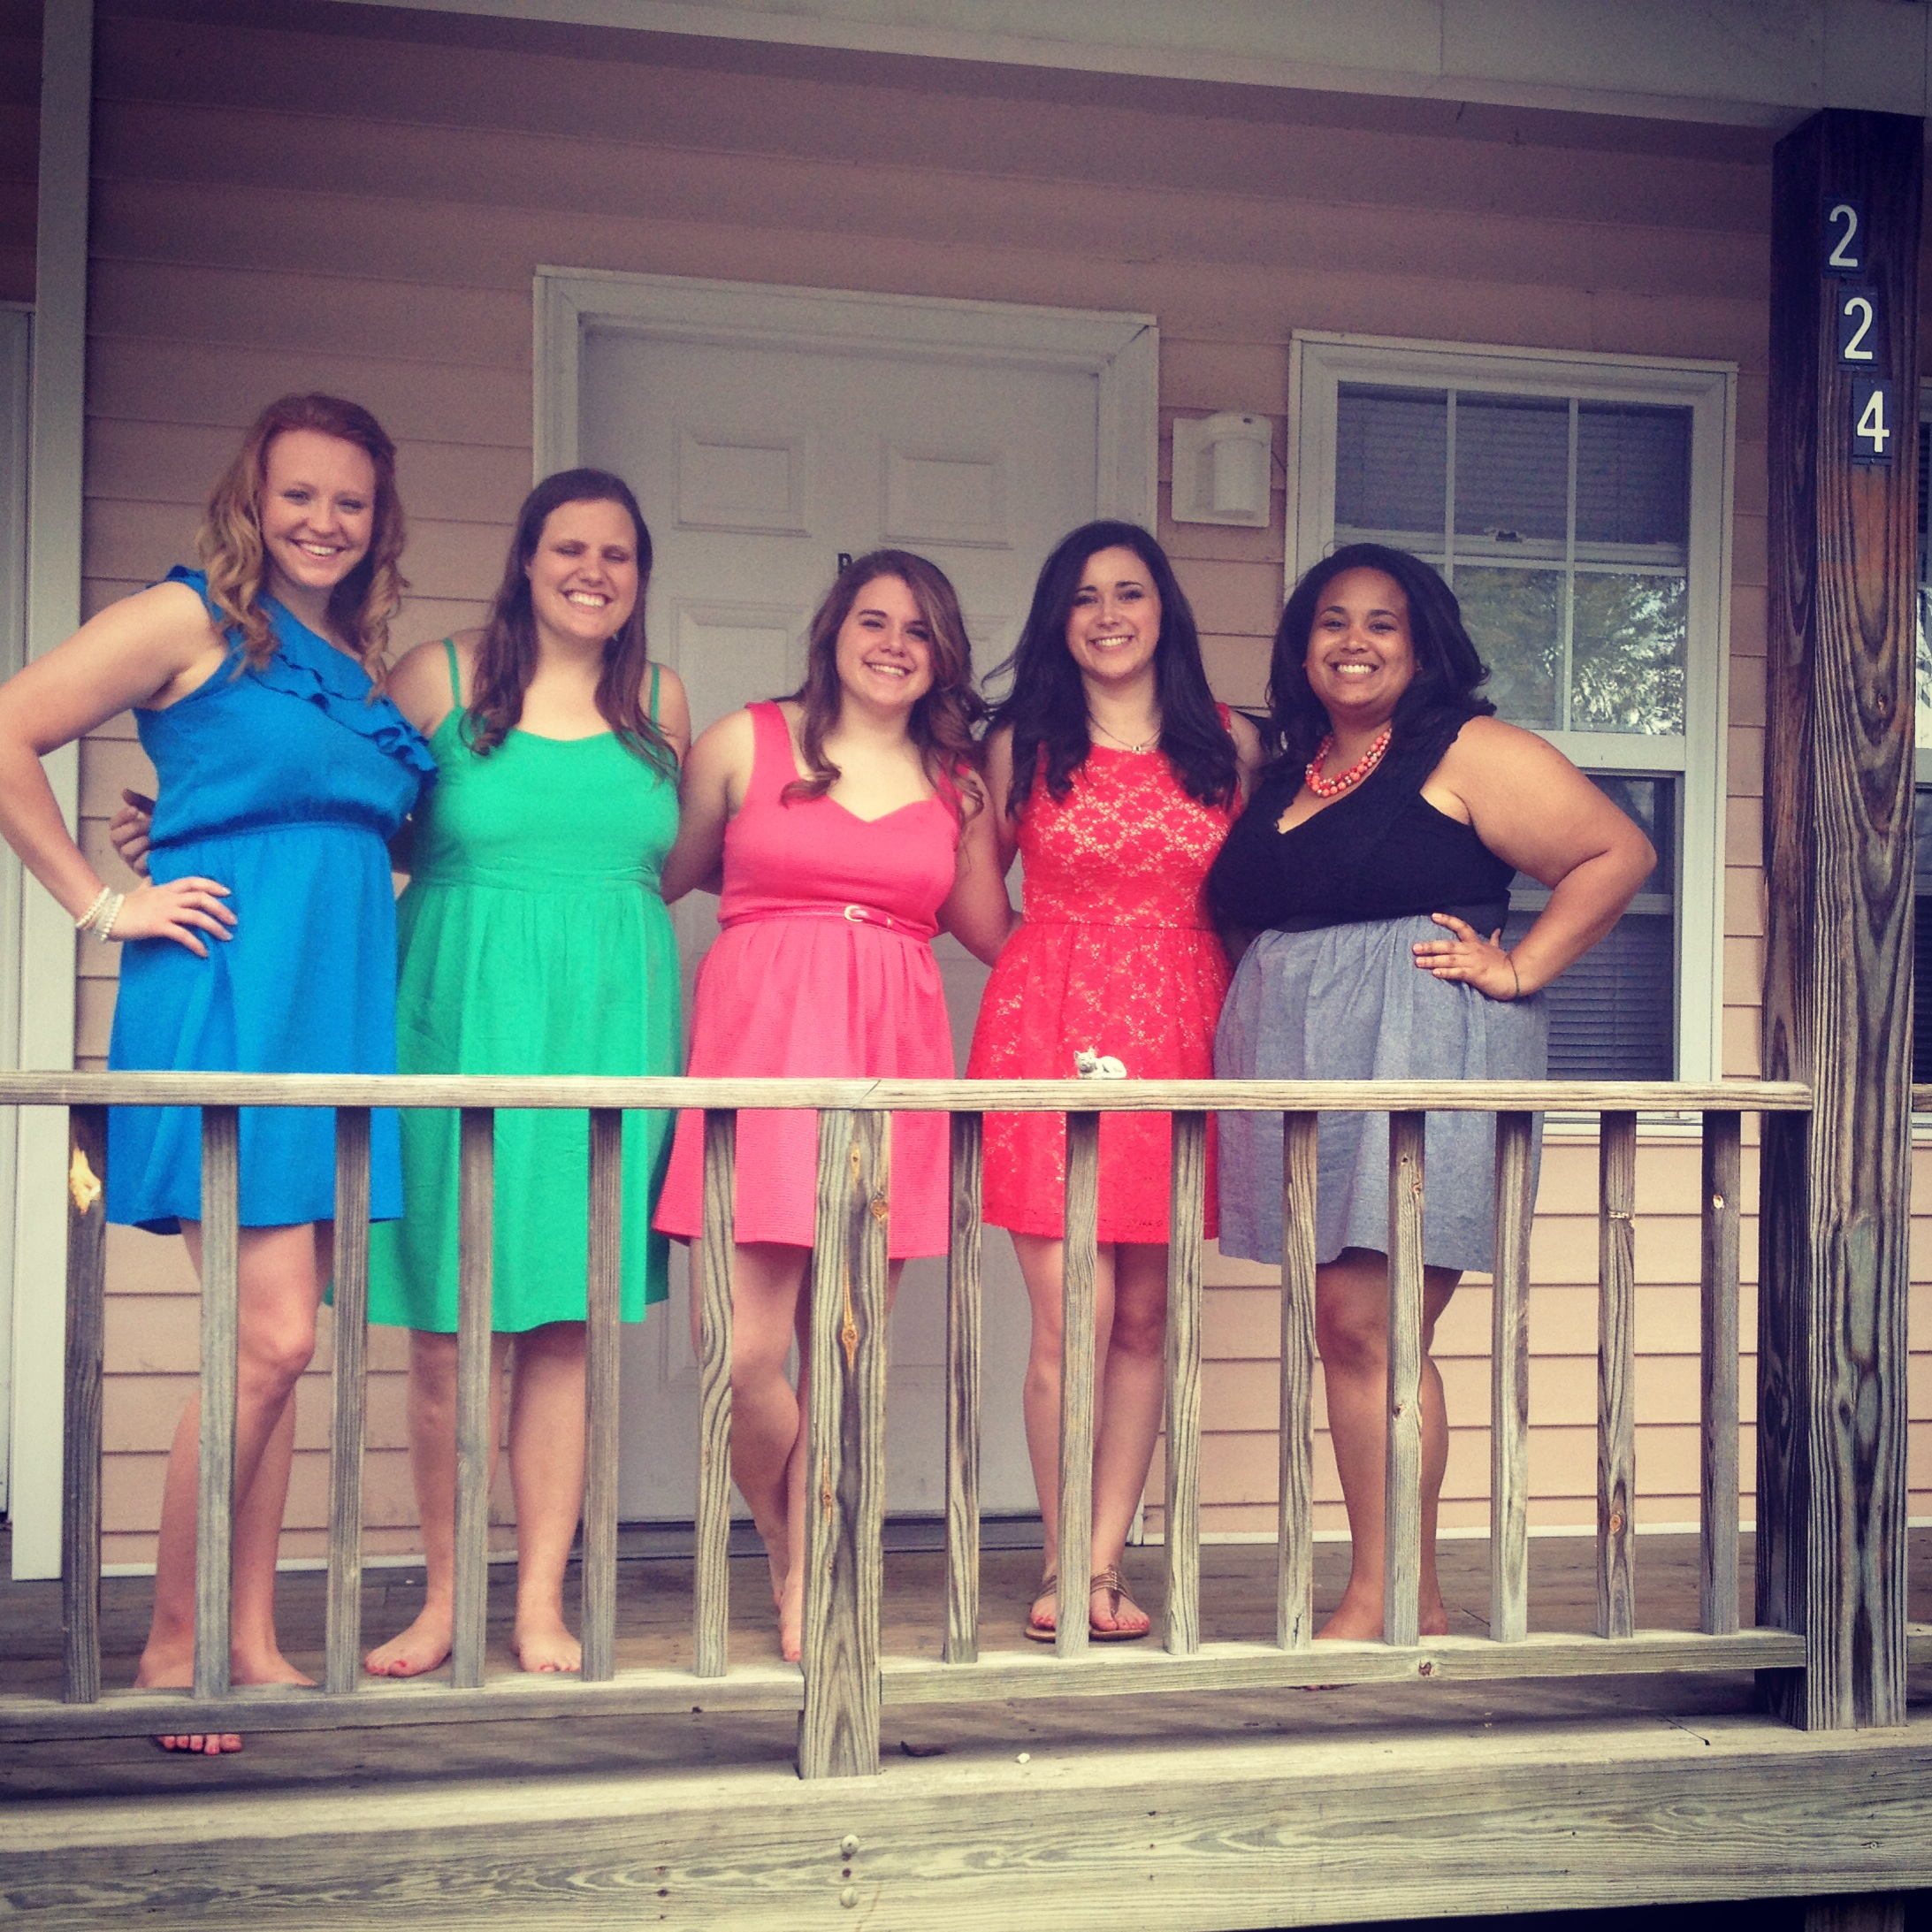 Almost all of The Pink House girls on graduation day. Just missing Nikki!